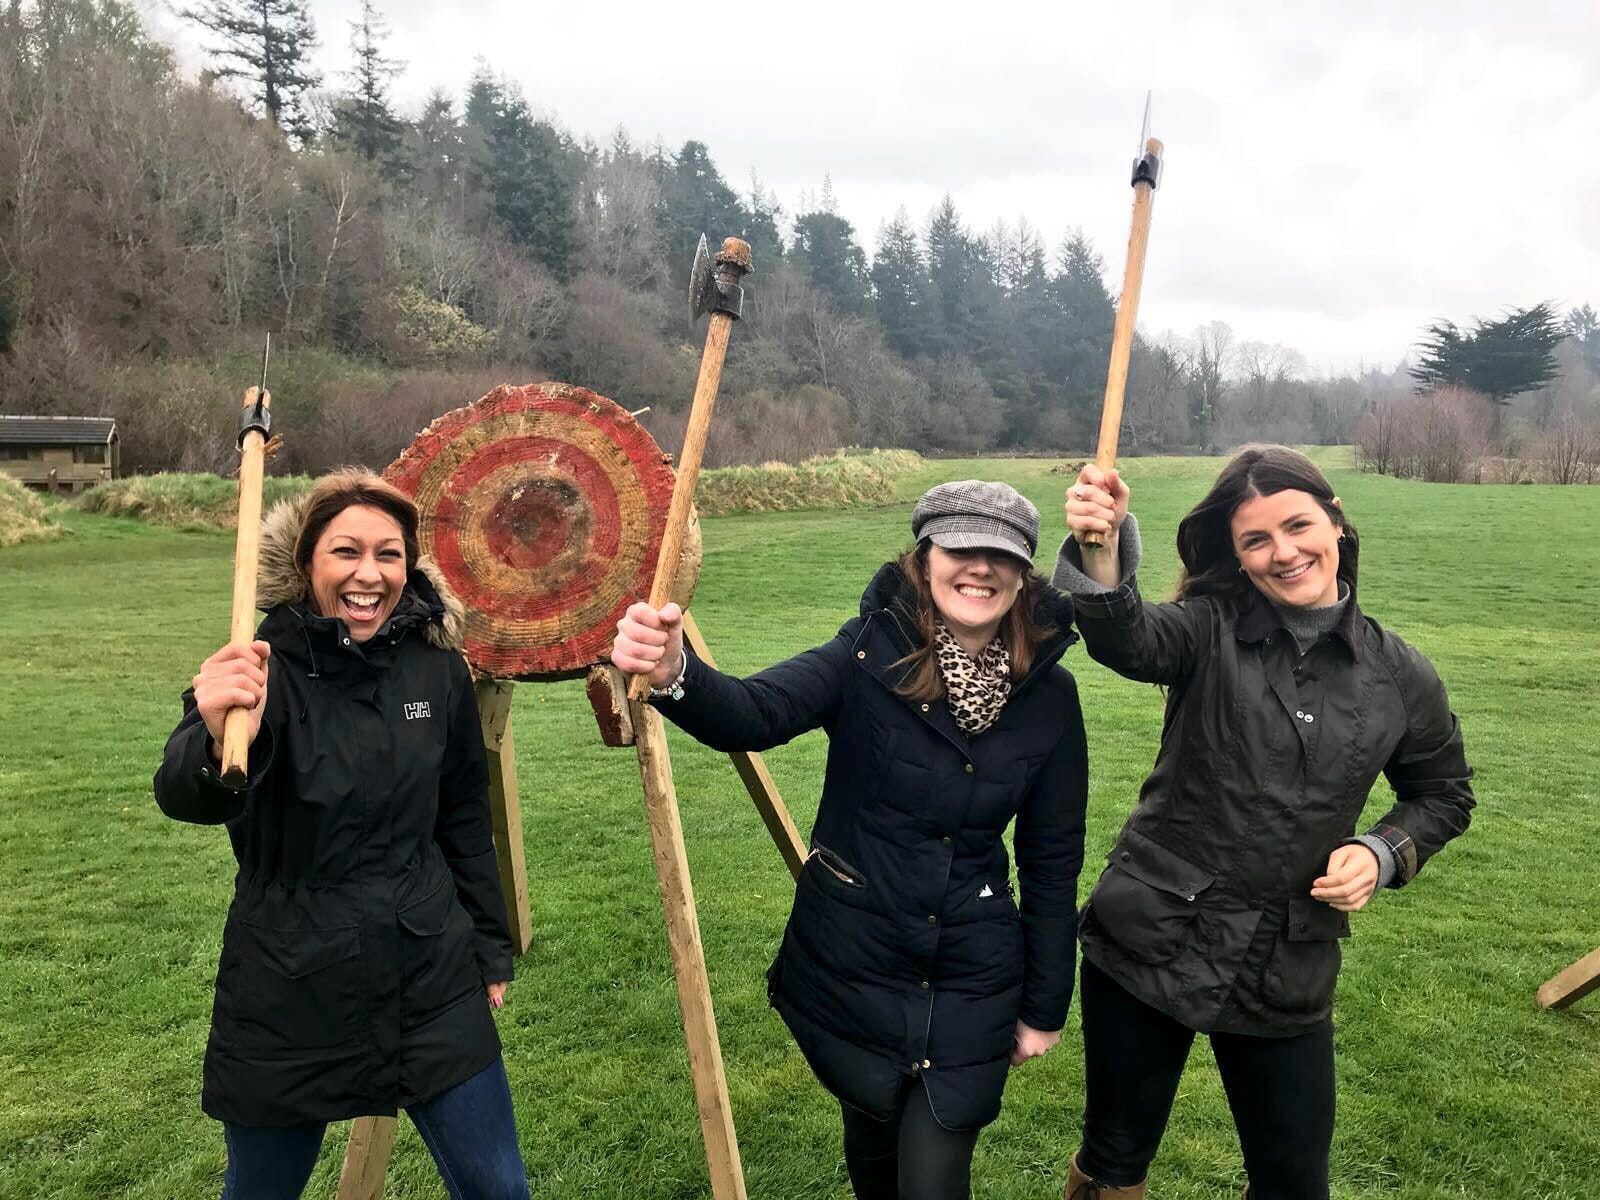 Delegates holding up their axes during Axe Throwing with Orangeworks.